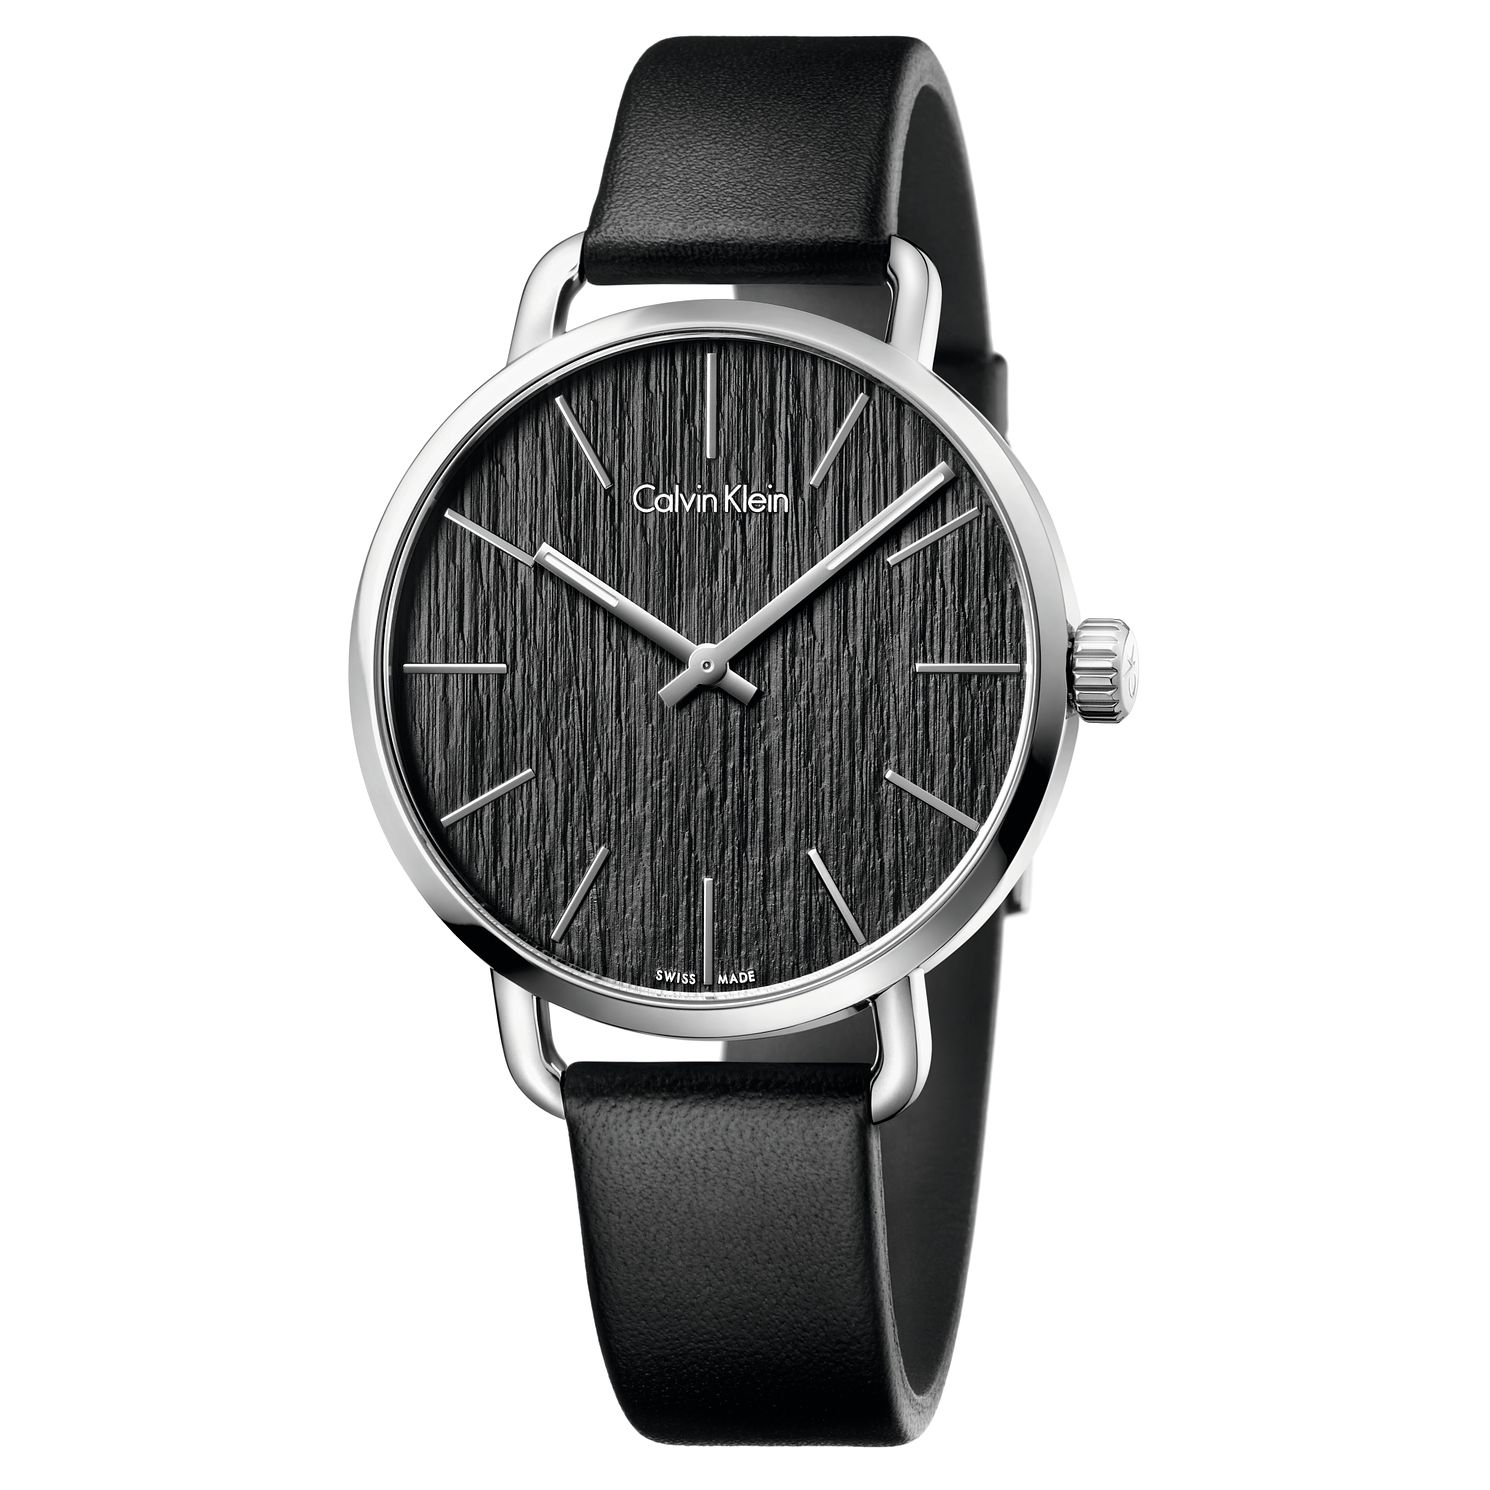 Calvin Klein Even Men's Black Dial Black Leather Strap Watch - Product number 5296056